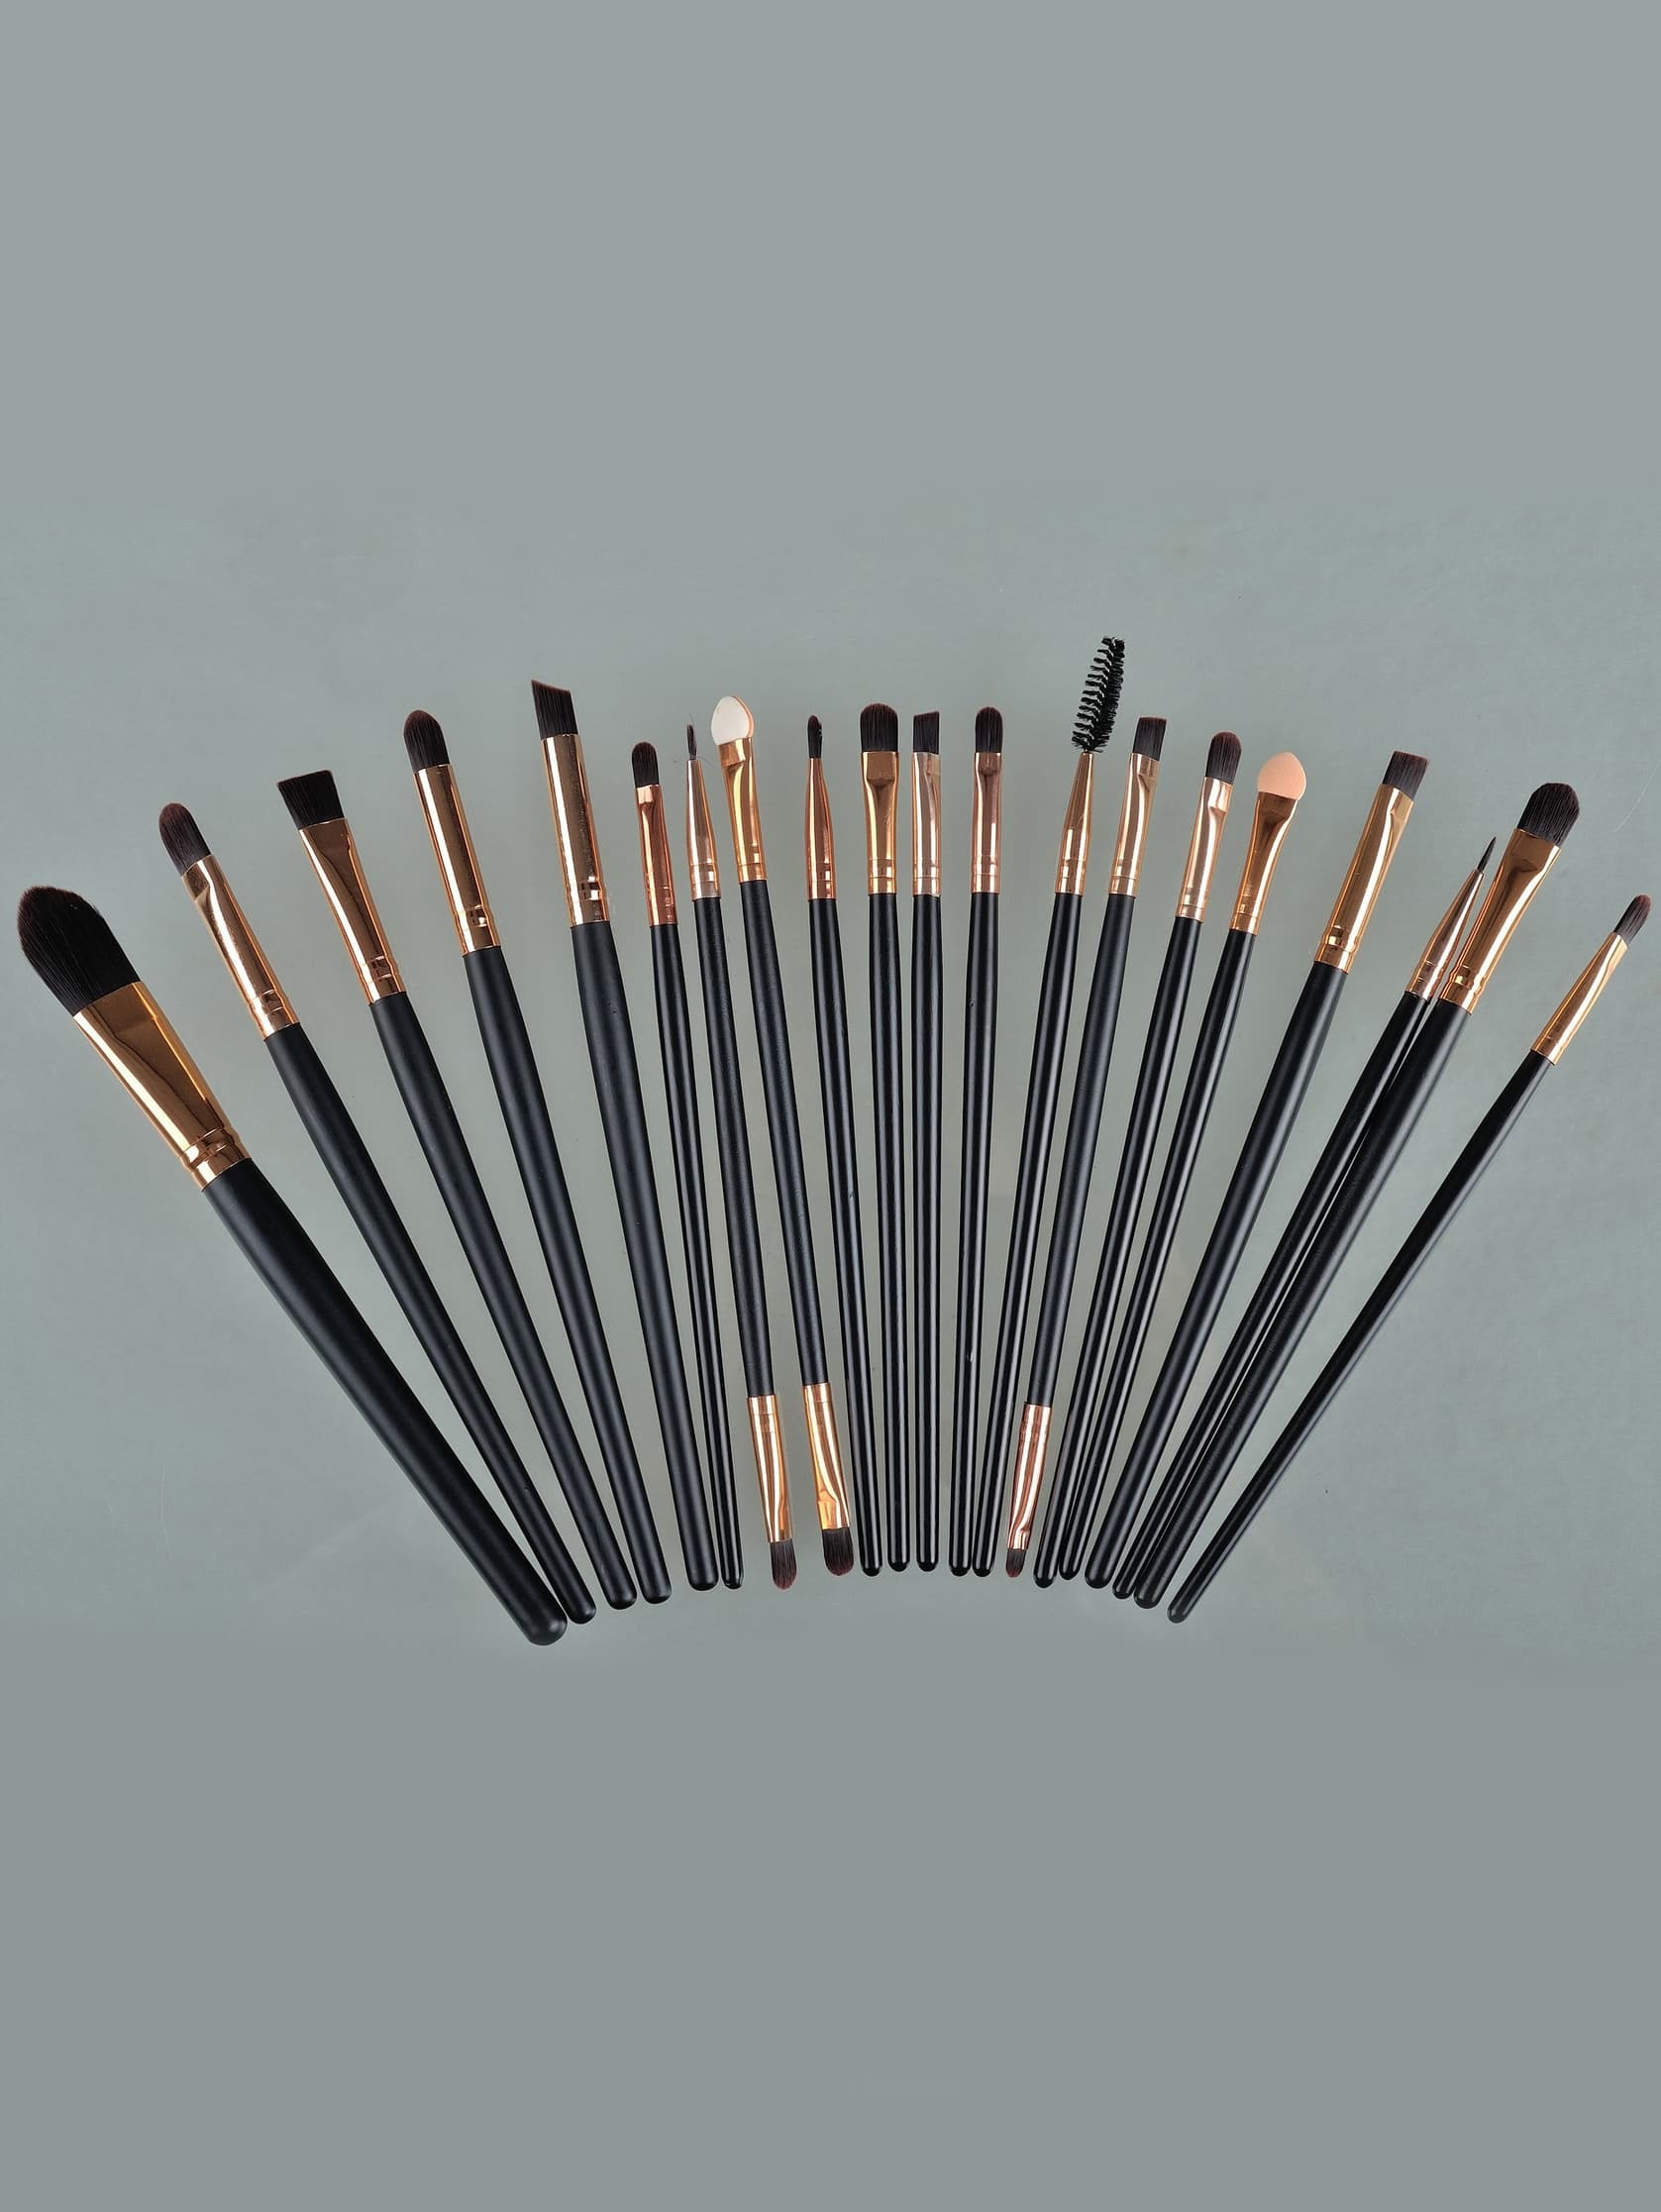 Image of 20pcs Professional Makeup Brushes Set Metal Make Up Brush Set-Black